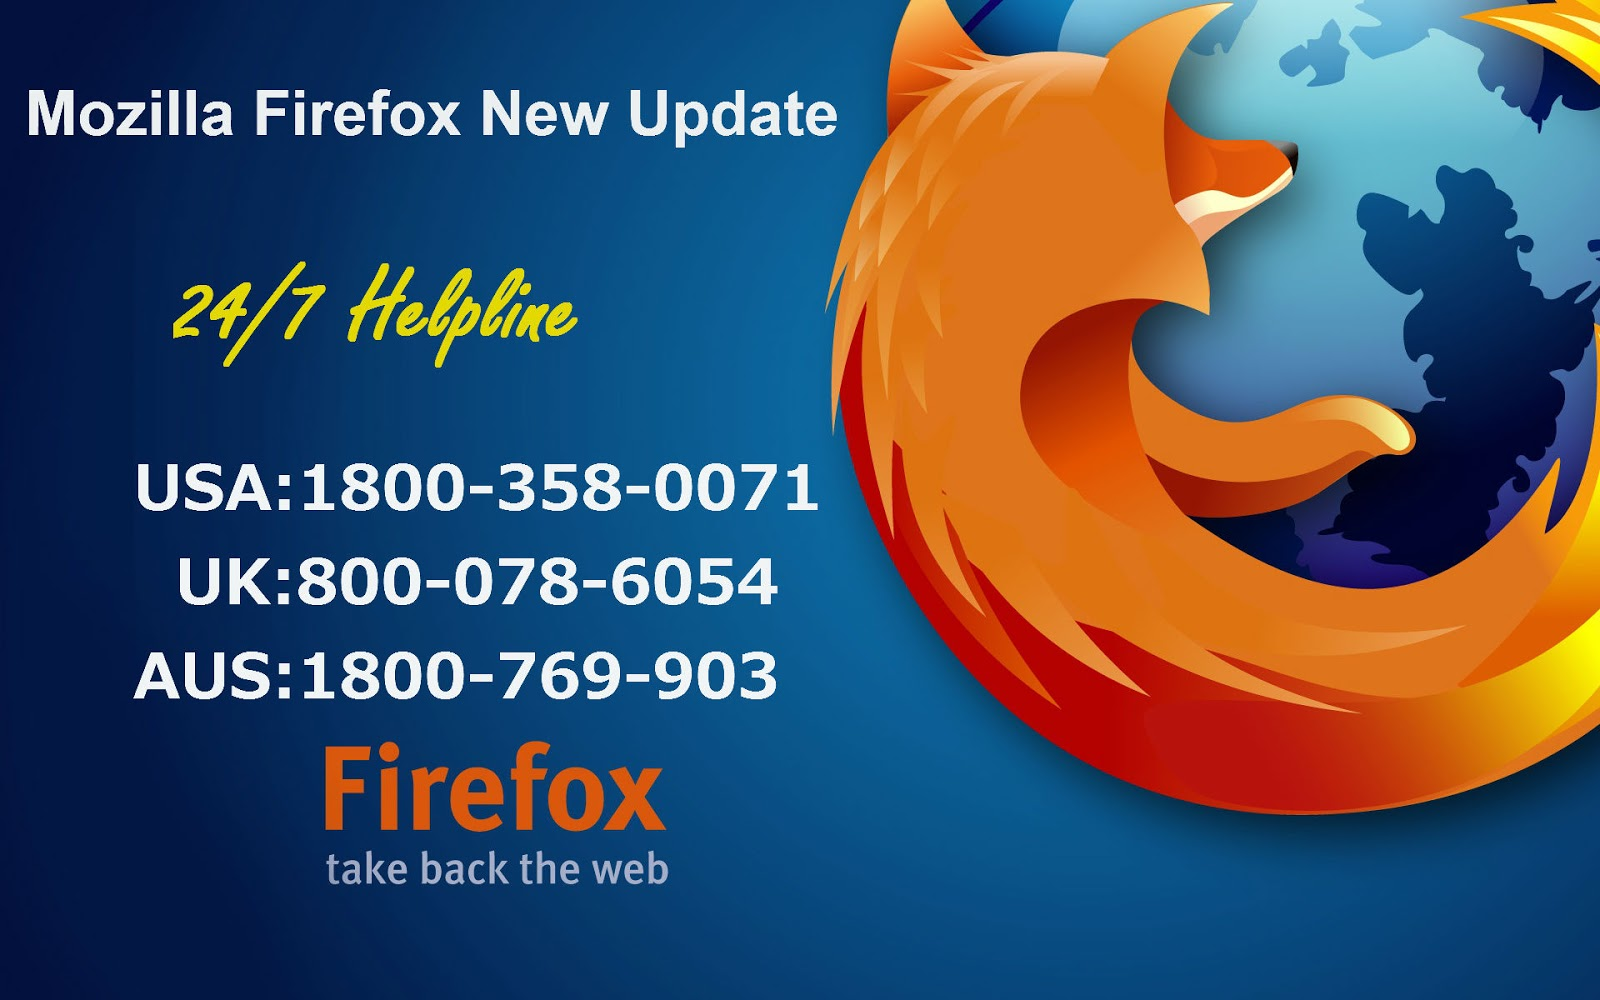 Firefox contact number